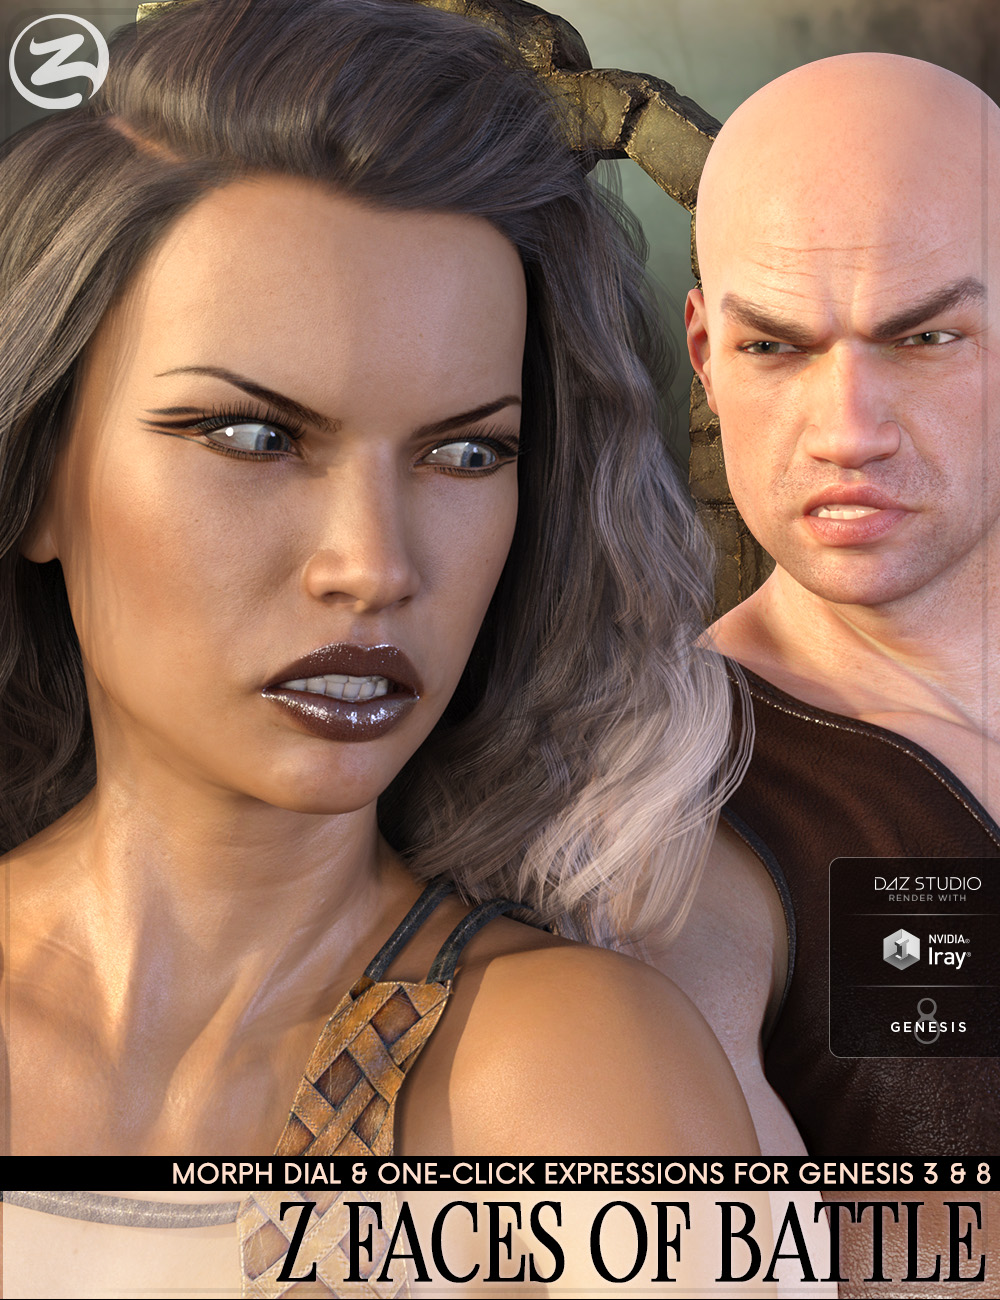 Z Faces Of Battle - Dialable and One-Click Expressions for Genesis 3 and 8 by: Zeddicuss, 3D Models by Daz 3D